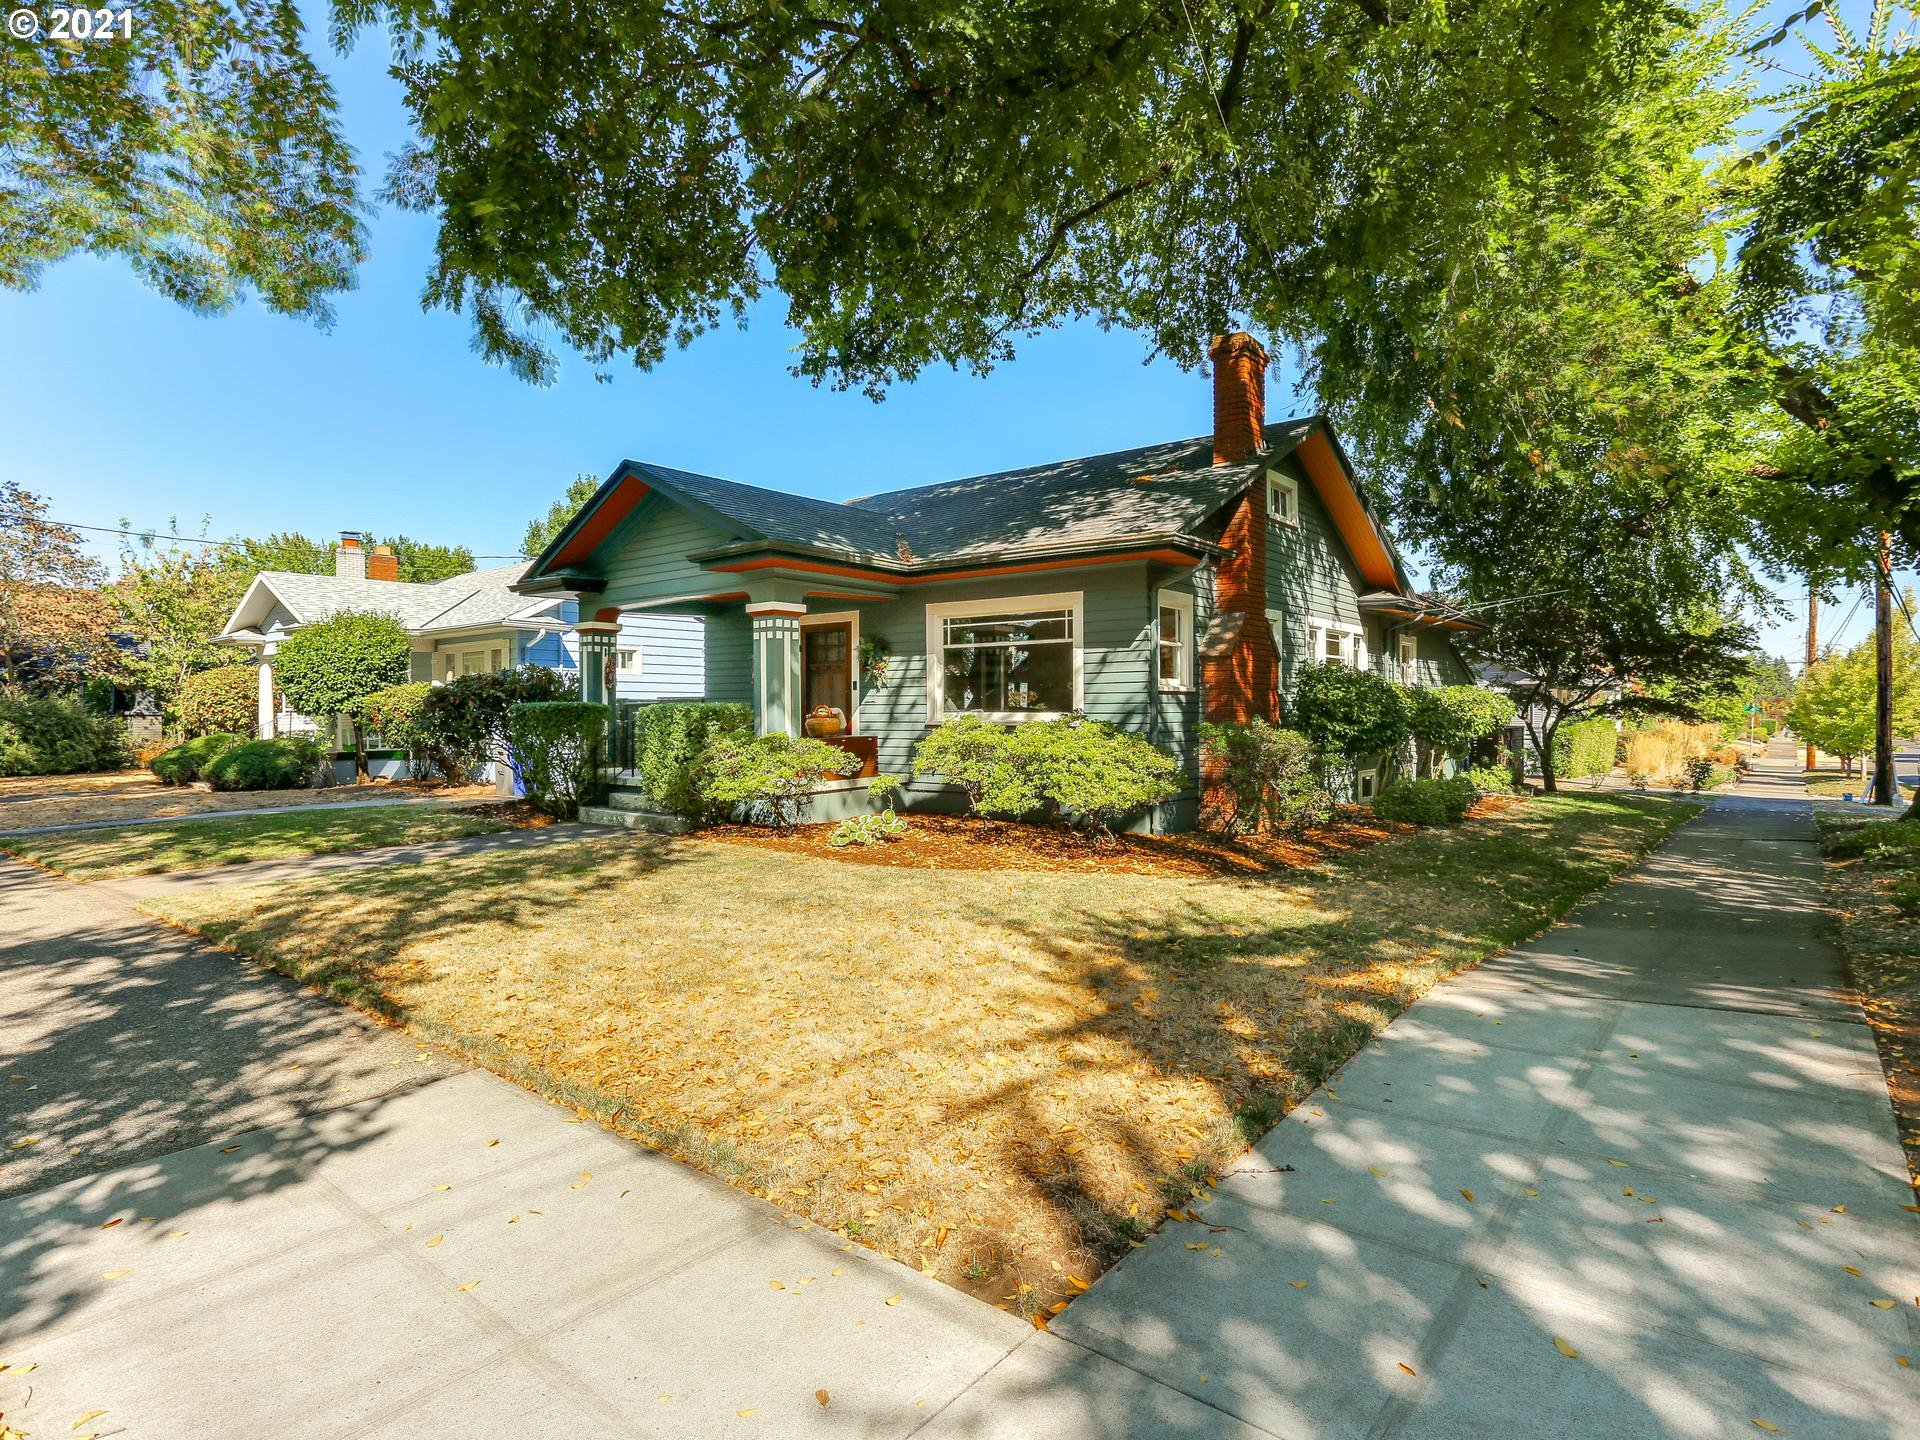 Open, 9/19, 12-2pm! Tucked away in Rose City, discover this quiet enclave of vintage homes, historic parks and treelined streets. Built of organic, natural materials, old growth Fir, original fittings, classic built-ins, handsome millwork this is an American Bungalow. Restored, renovated, ready for another 100 years w/intelligent improvements, quality finishes, fixtures and design driven renovations. Clever WFH space in the kitchen, another on the lower level which functions as a separate suite. [Home Energy Score = 6. HES Report at https://rpt.greenbuildingregistry.com/hes/OR10194876]